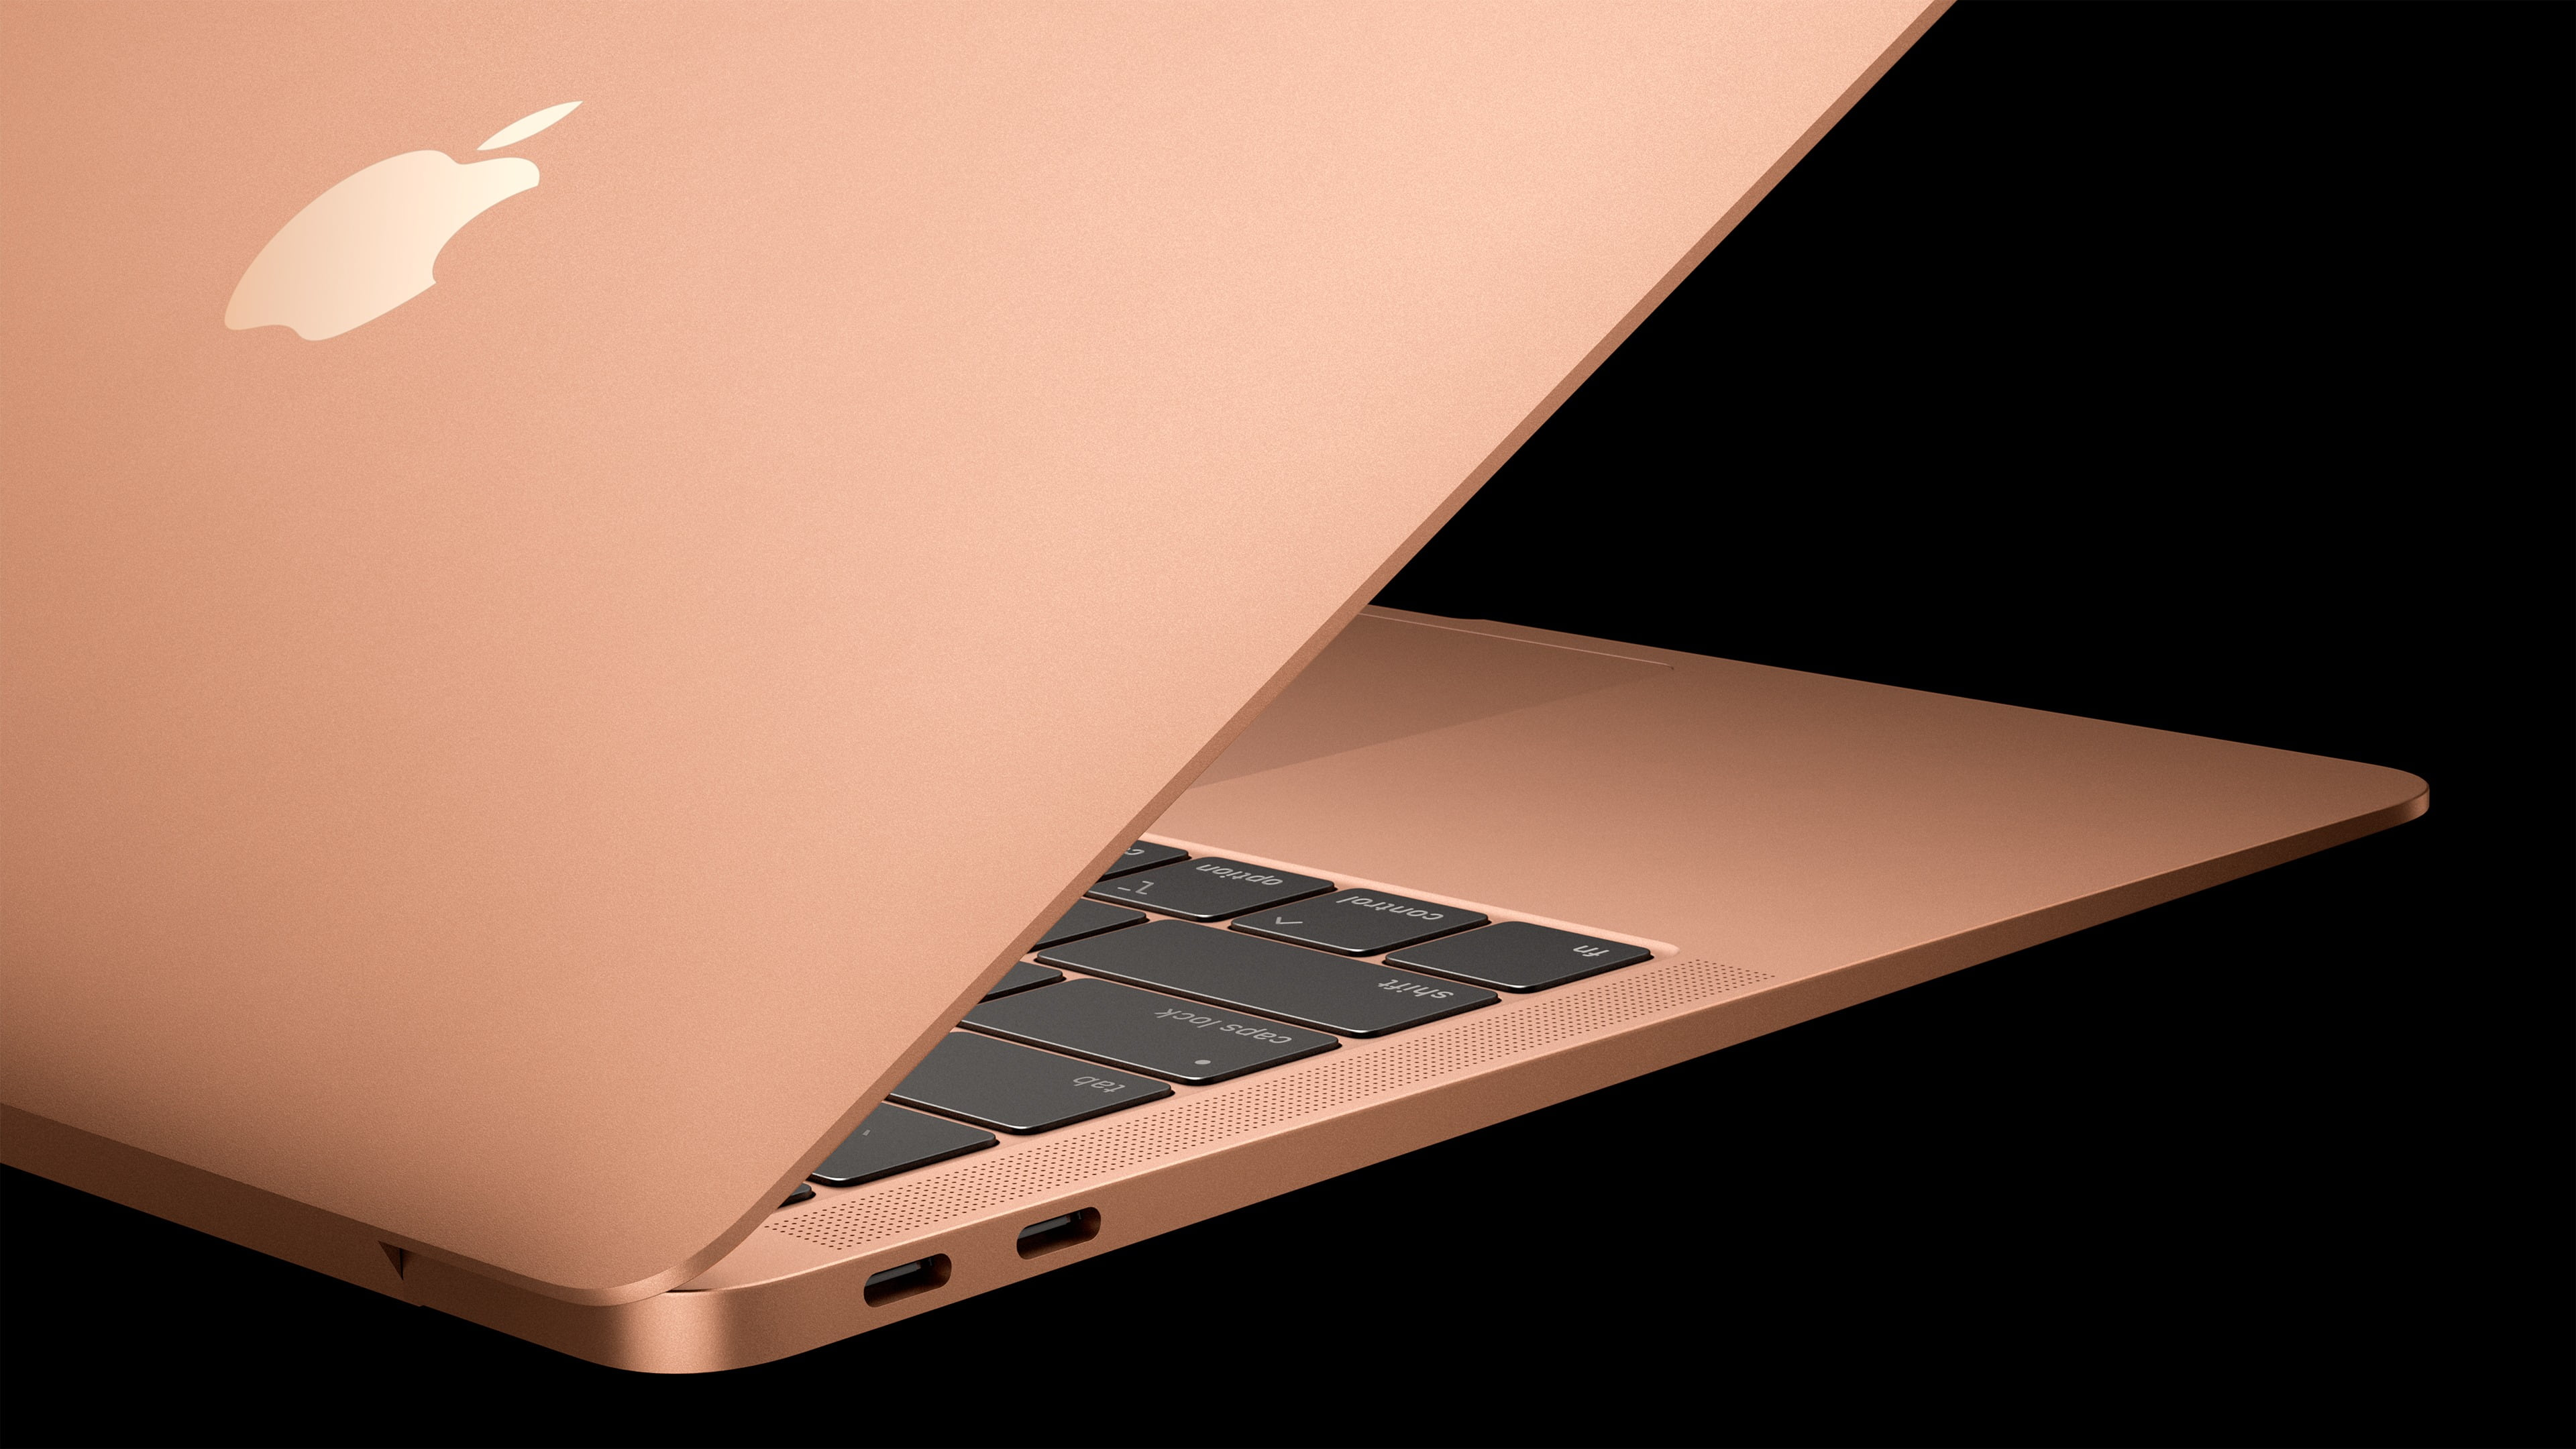 New MacBook Air with Retina Display and Mac mini with More